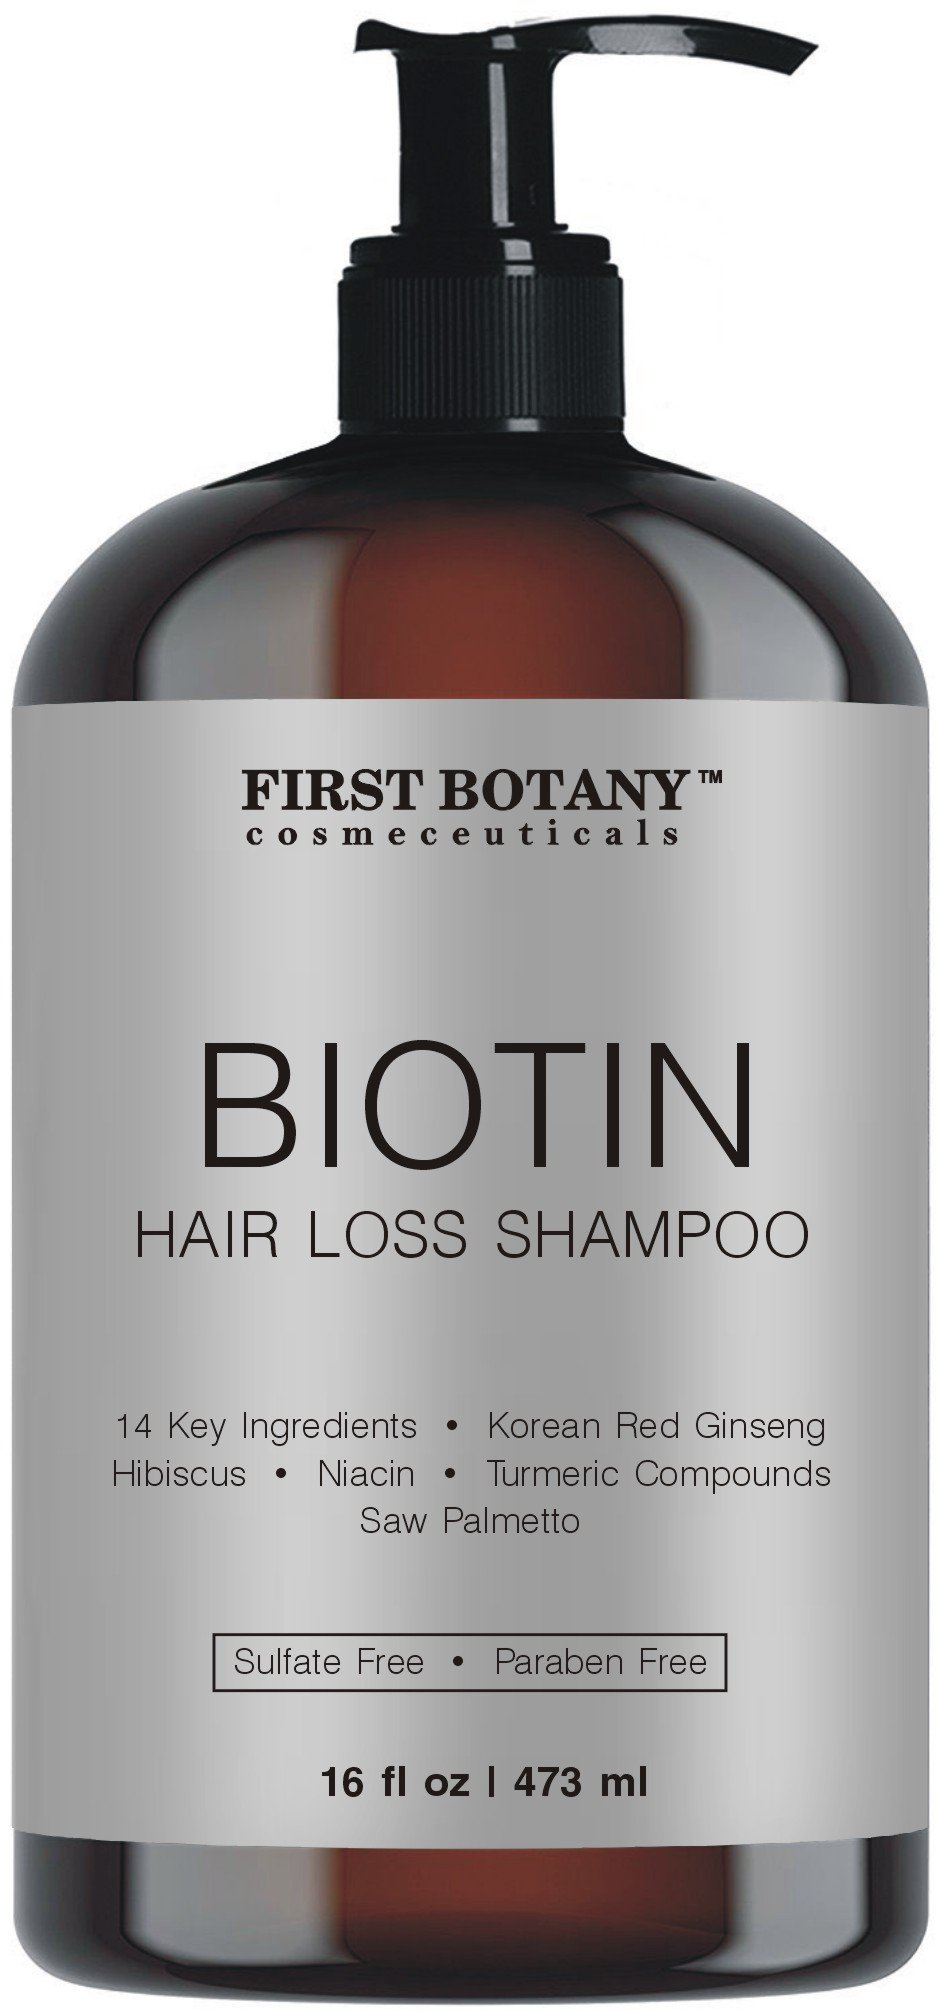 Hair Growth Hair Loss Shampoo - 16 fl oz, with 14 DHT blockers- Hair Regrowth and Daily Hydrating, Detoxifying, Volumizing Shampoo For Men and Women by First Botany Cosmeceuticals